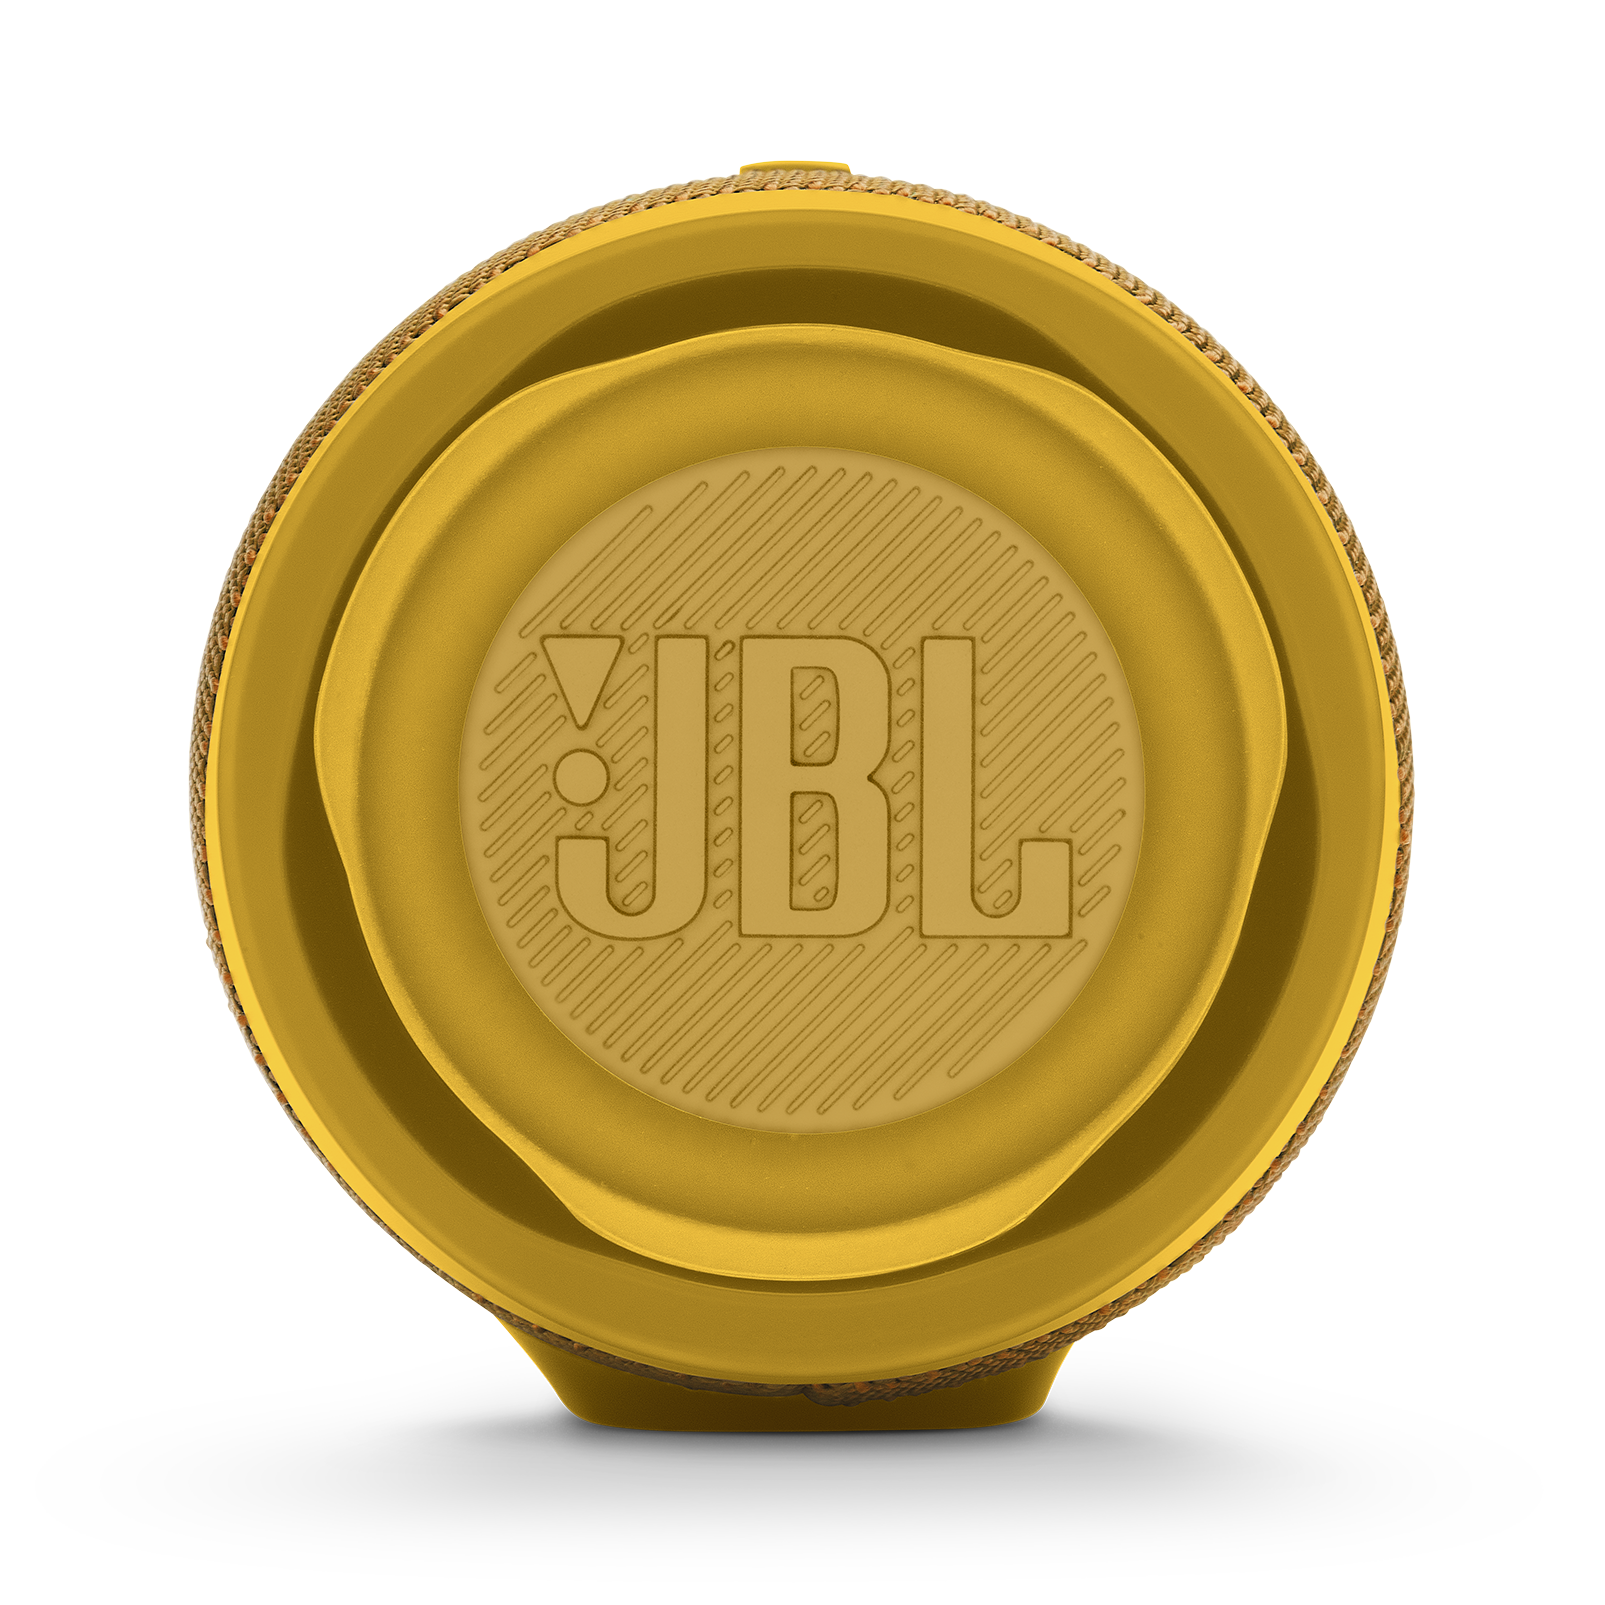 JBL Charge 4 - Mustard Yellow - Portable Bluetooth speaker - Detailshot 2